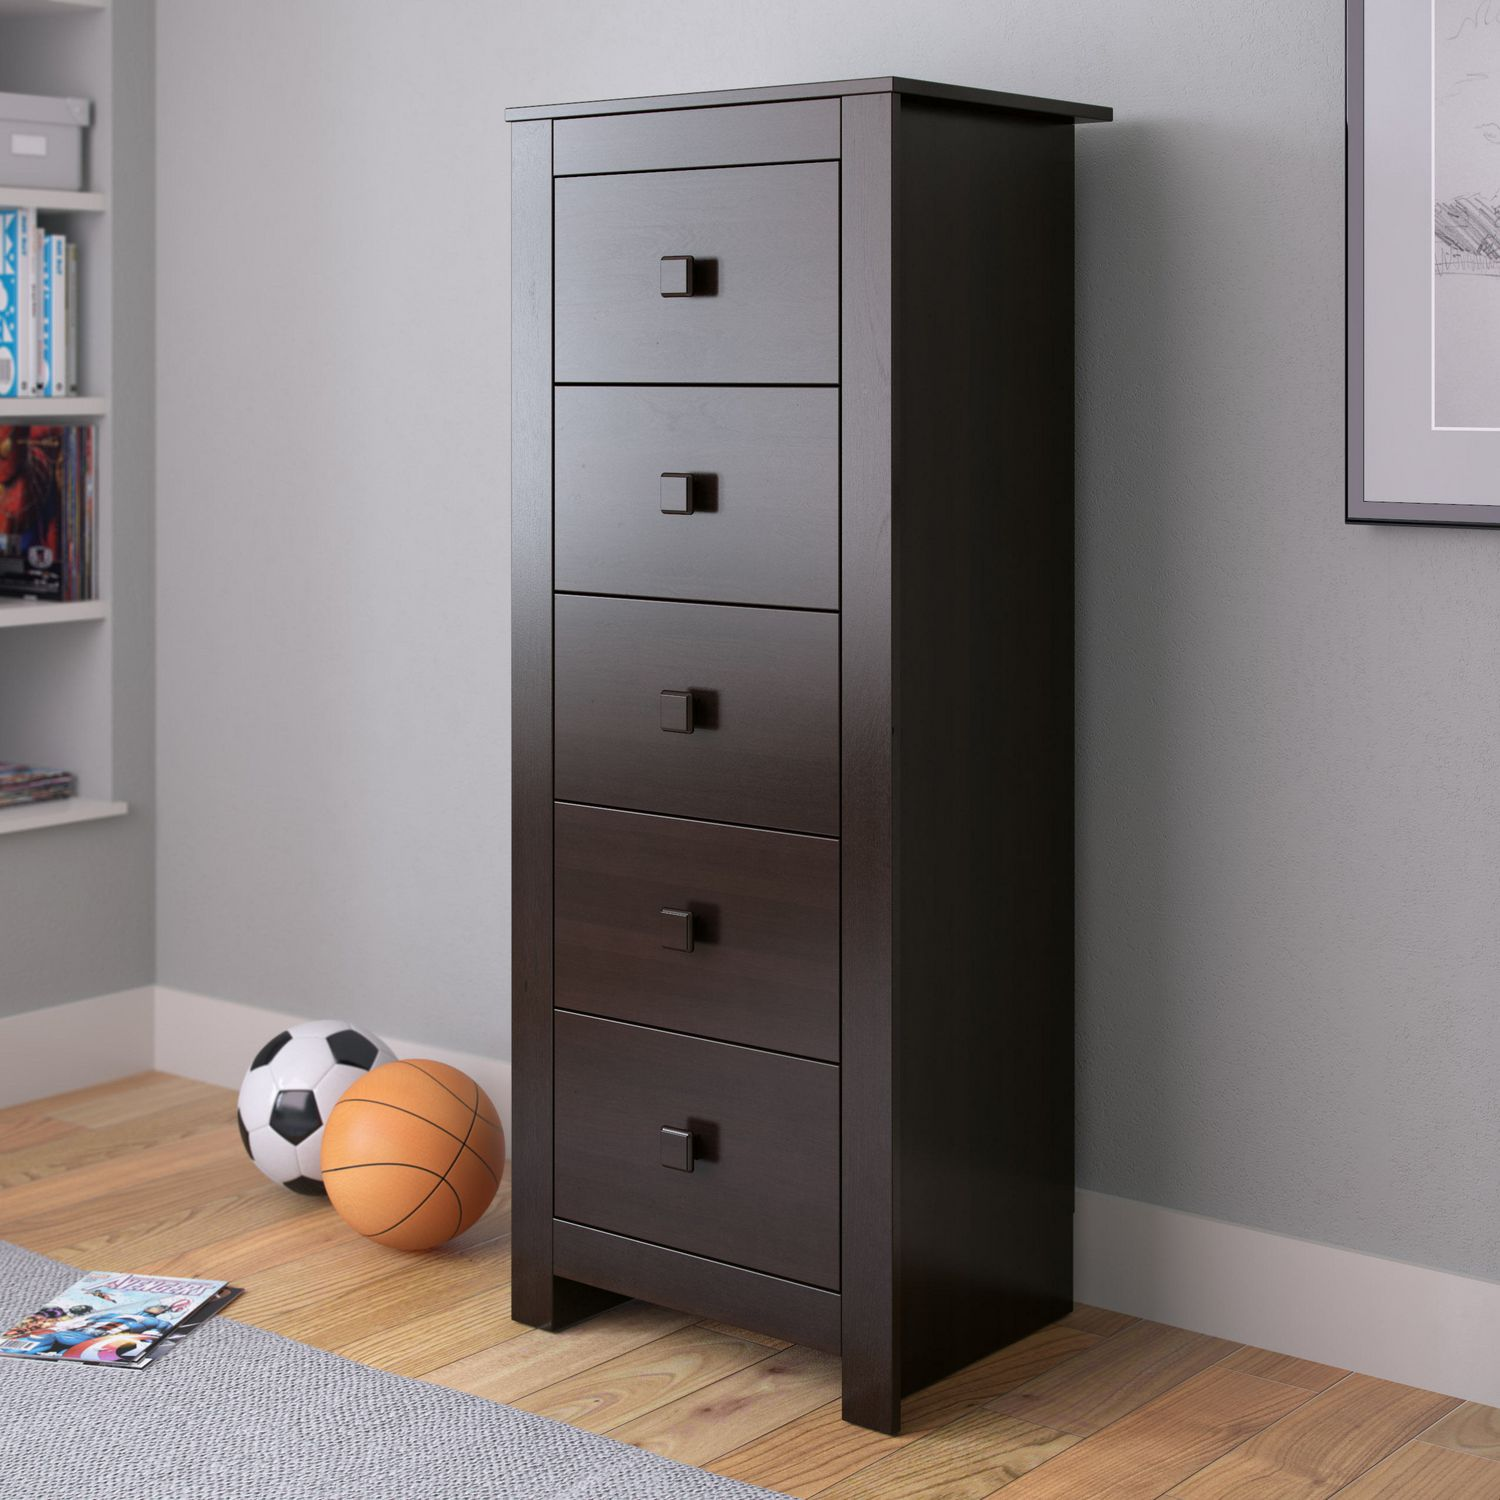 d picture product a drawers with en large dressers scorpio furniture mako dresser of drawer catalog wood deep